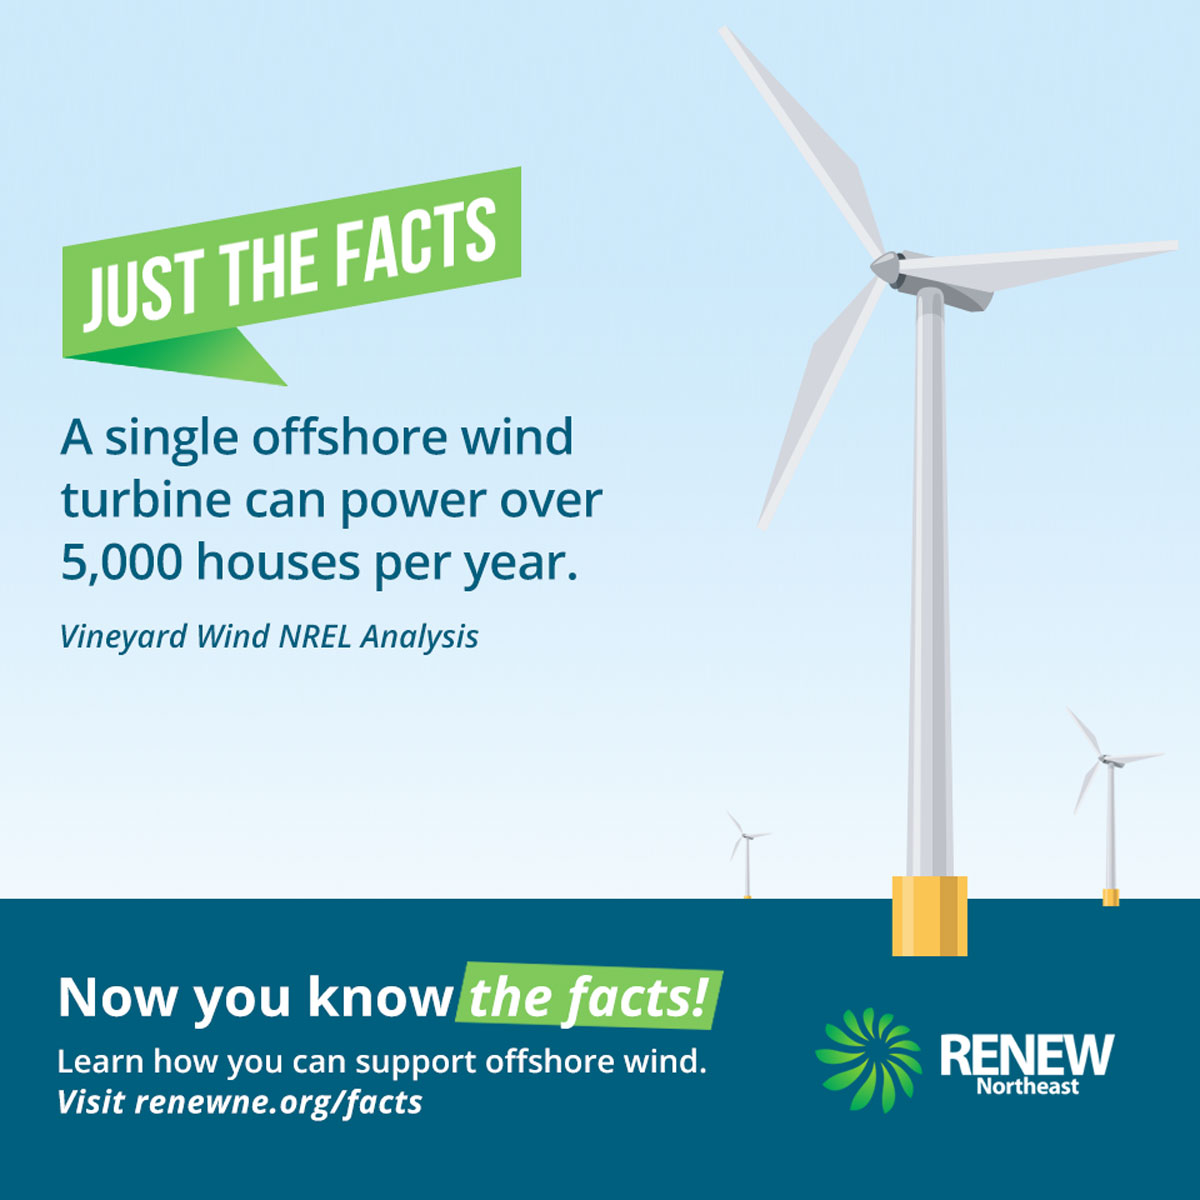 A single offshore wind turbine can power over 5,000 houses per year. #JustTheFacts